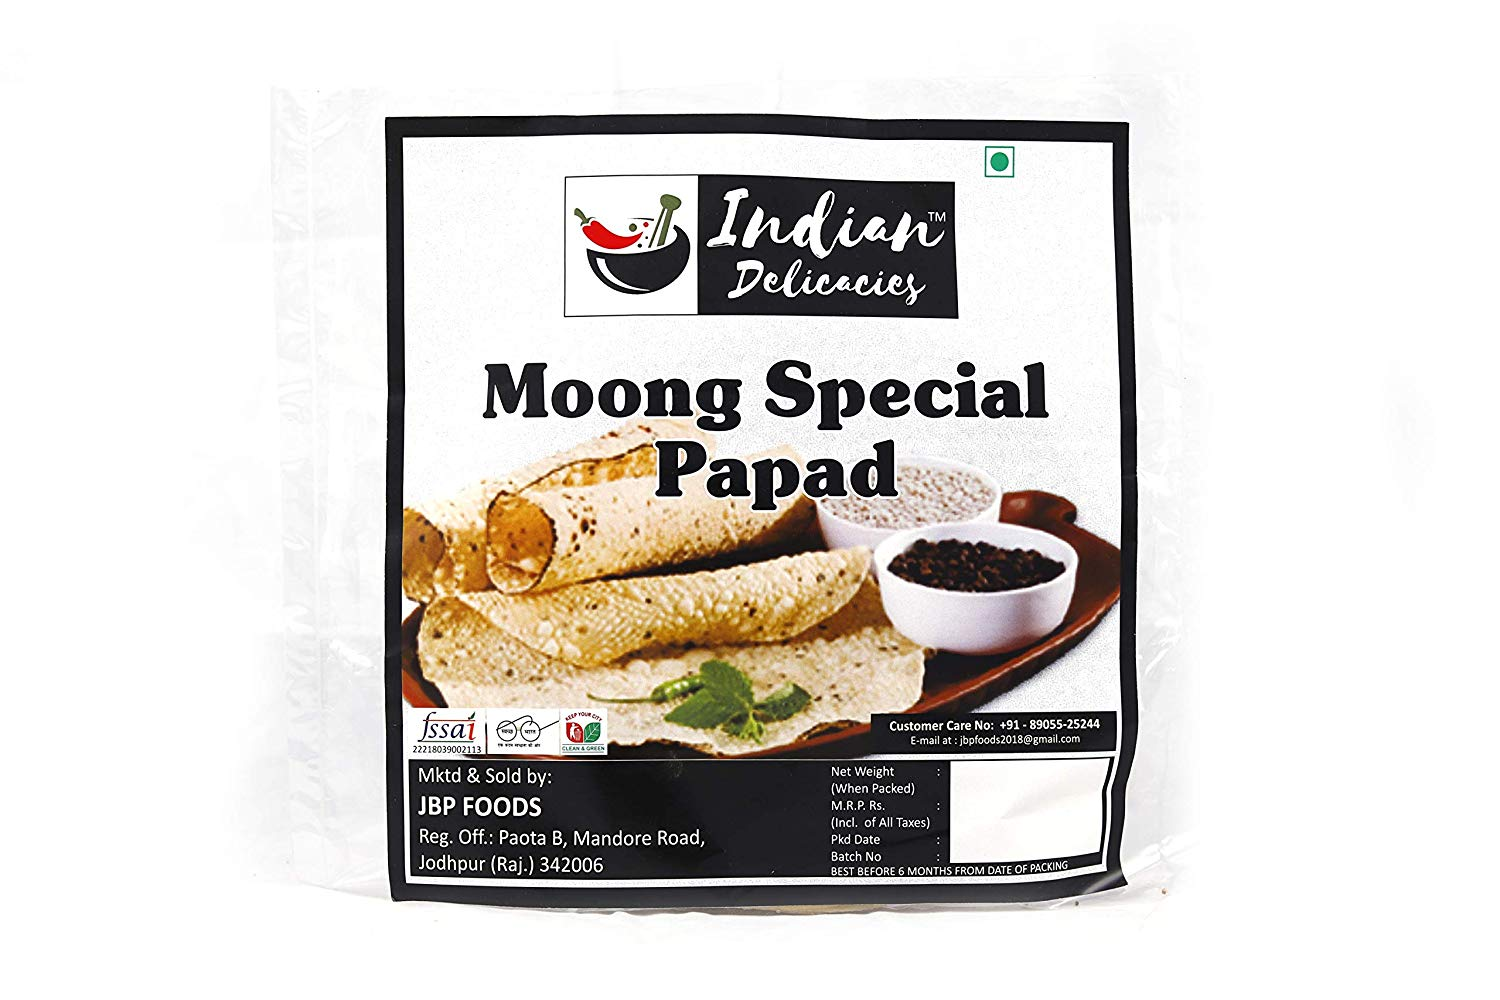 Indian Delicacies Strong Spicy Moong Special Papad